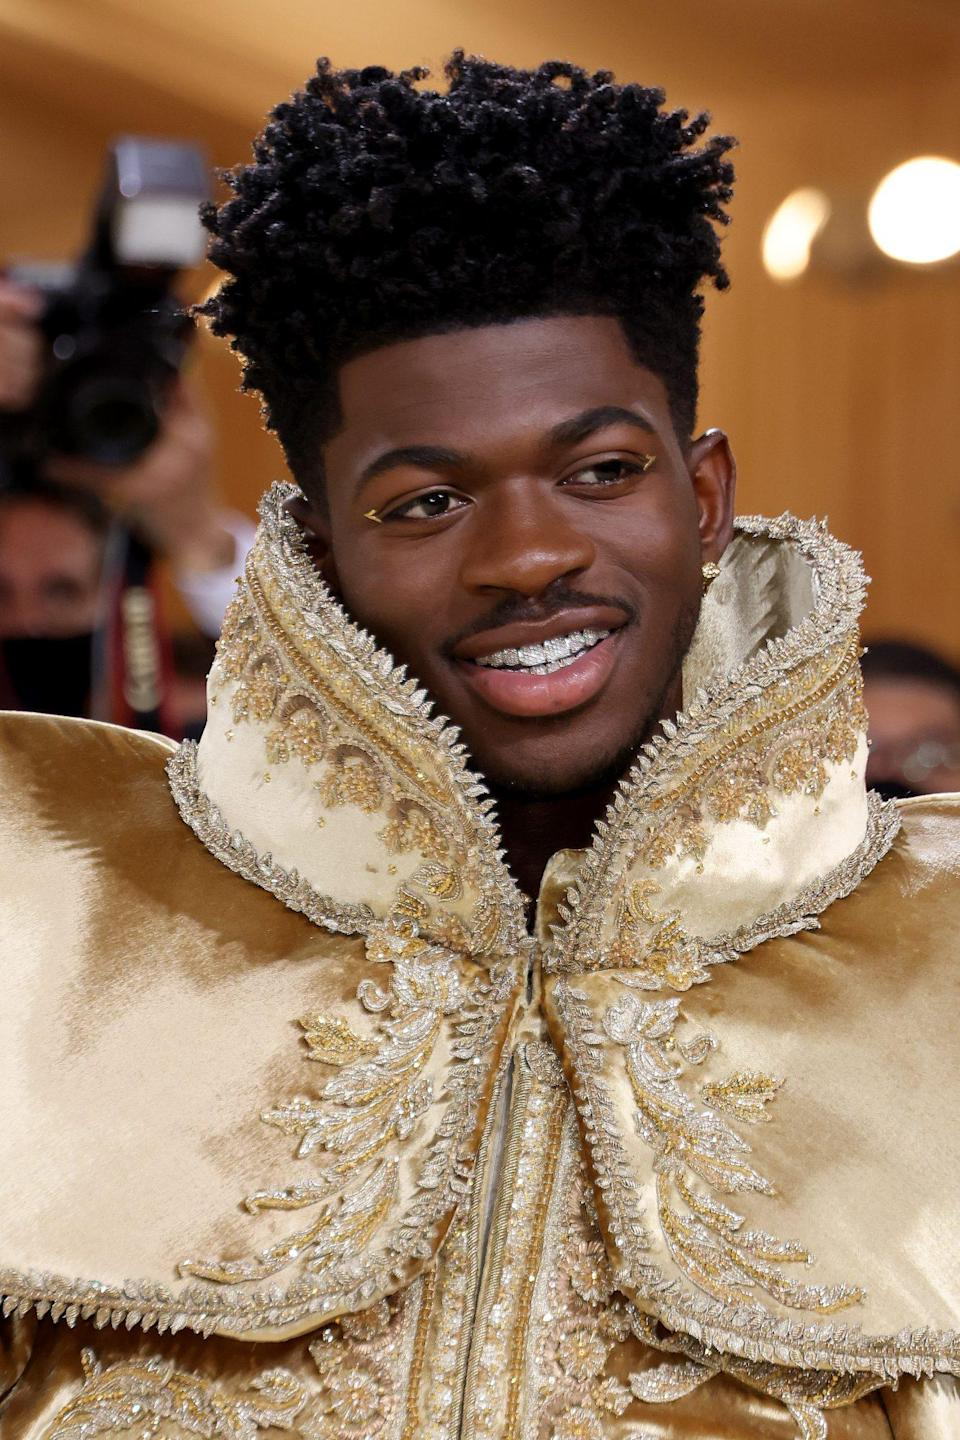 """<p>Gen Z king Lil' Nas X looked stunning on the red carpet. Much like supermodel Iman, the young star's makeup artist <a href=""""https://protect-us.mimecast.com/s/PYTkCkRgRXsnjNOzJSQddaM?domain=autumncommunications-dot-yamm-track.appspot.com"""" rel=""""nofollow noopener"""" target=""""_blank"""" data-ylk=""""slk:Grace Pae"""" class=""""link rapid-noclick-resp"""">Grace Pae</a> added golden decals around his eyes and made sure he had flawless skin by using the <a href=""""https://shareasale.com/r.cfm?b=1649768&u=1772040&m=102659&urllink=https%3A%2F%2Fwww.solawave.co%2Fproduct%2Fsolawave-wand-microcurrent-red-light-therapy-facial-massage-therapeutic-warmth&afftrack=ISWereStillNotOvertheBestBeautyLooksFromthe2021MetGalakgreavesMetGal4544674202109I"""" rel=""""sponsored noopener"""" target=""""_blank"""" data-ylk=""""slk:SolaWave Wand"""" class=""""link rapid-noclick-resp"""">SolaWave Wand</a> along with VERSED's <a href=""""https://protect-us.mimecast.com/s/BuIxCn5l56iG25n5EhpPOoE?domain=target.com"""" rel=""""nofollow noopener"""" target=""""_blank"""" data-ylk=""""slk:DEW POINT Moisturizing Gel-Cream"""" class=""""link rapid-noclick-resp"""">DEW POINT Moisturizing Gel-Cream</a> for skincare, and makeup products from <a href=""""https://protect-us.mimecast.com/s/i3fmCkRgRXsnjNgNEf9rPjo?domain=danessamyricksbeauty.com/"""" rel=""""nofollow noopener"""" target=""""_blank"""" data-ylk=""""slk:Danessa Myricks Beauty"""" class=""""link rapid-noclick-resp"""">Danessa Myricks Beauty</a> before he hit the red carpet. </p>"""